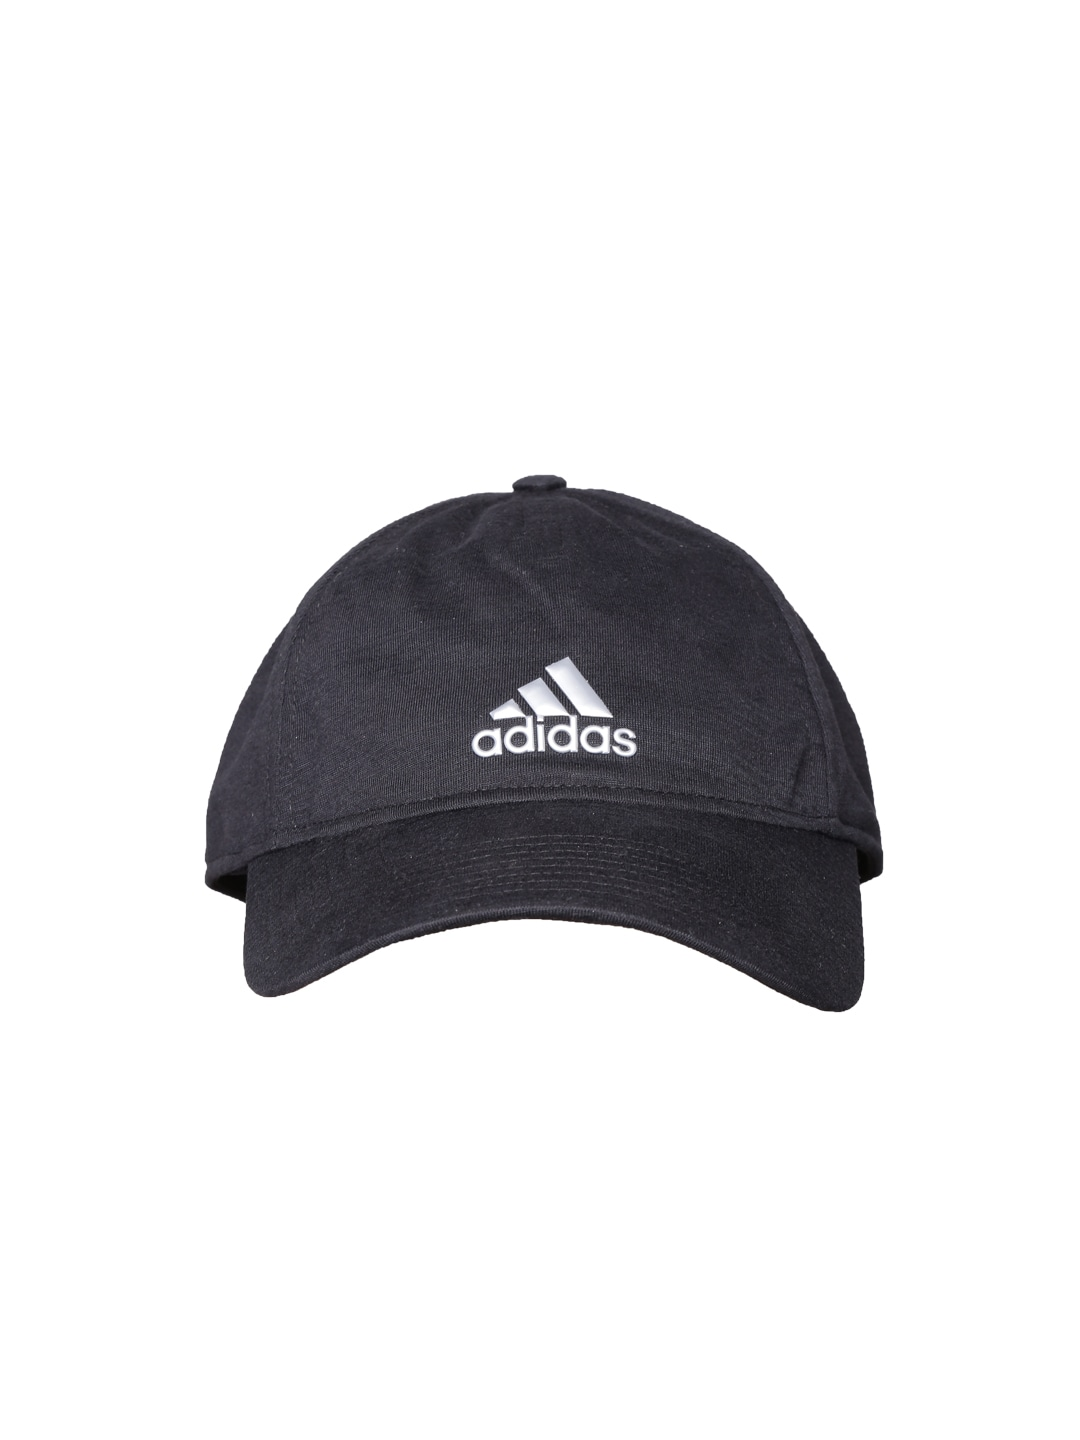 6b544d2146b Adidas Polyester Caps - Buy Adidas Polyester Caps online in India